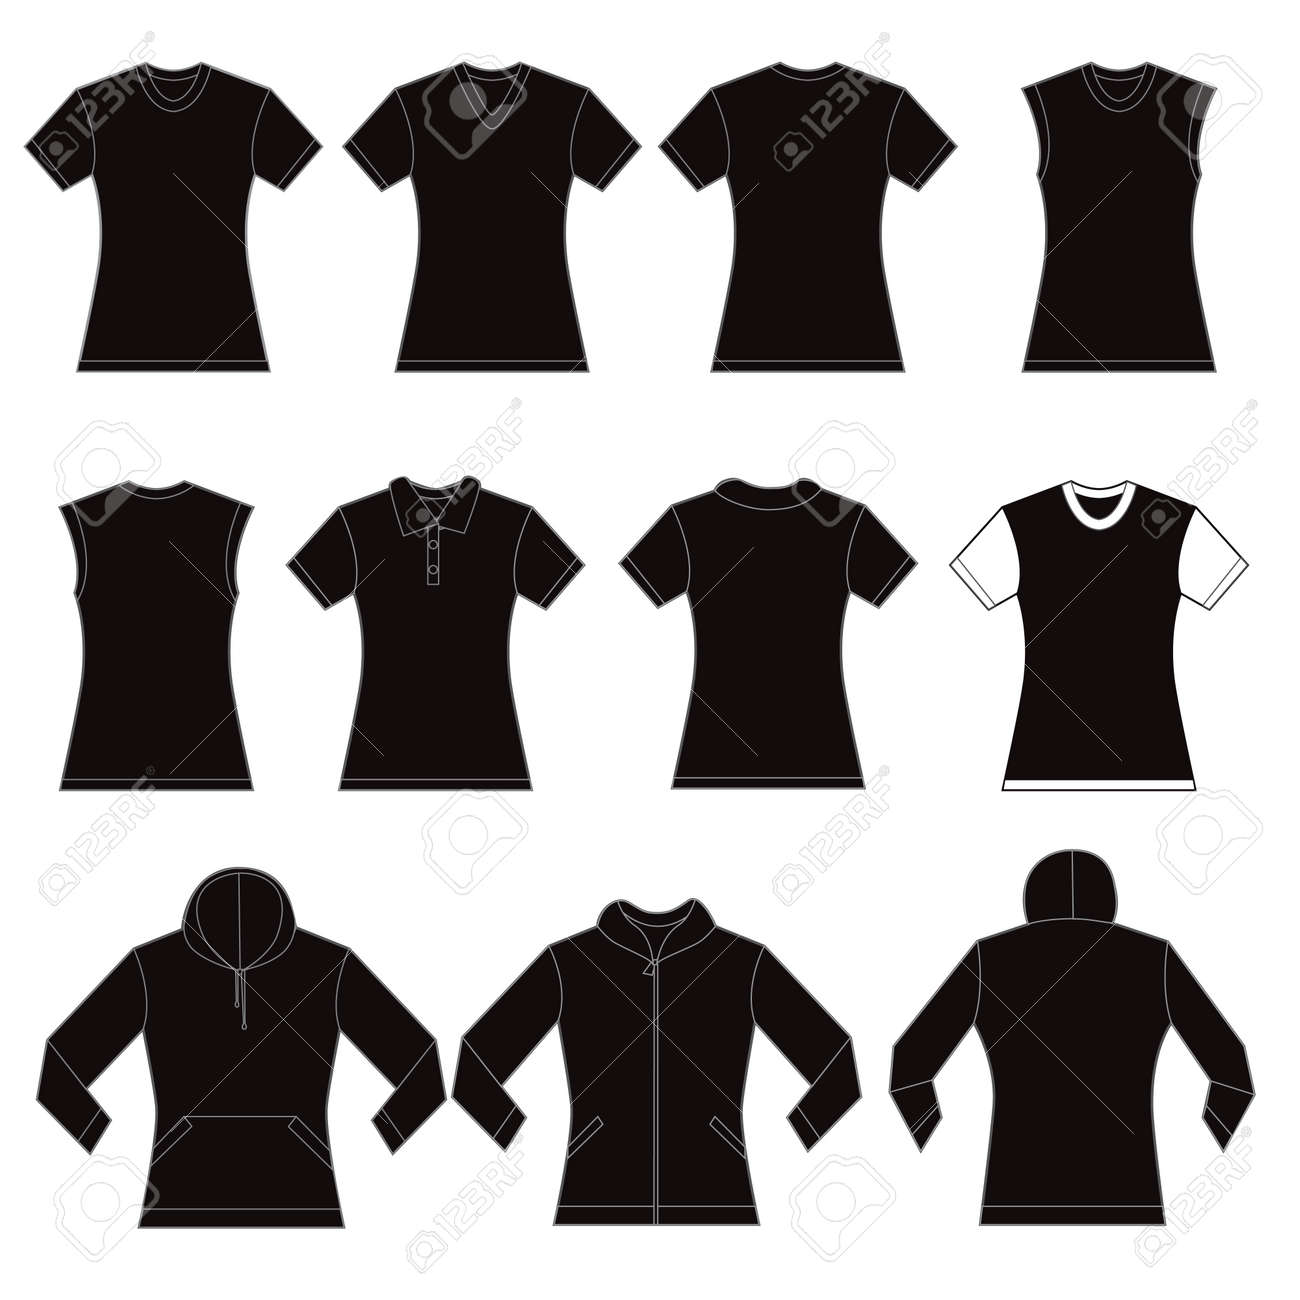 Set Of Black Female Shirt Template Designs Royalty Free Cliparts